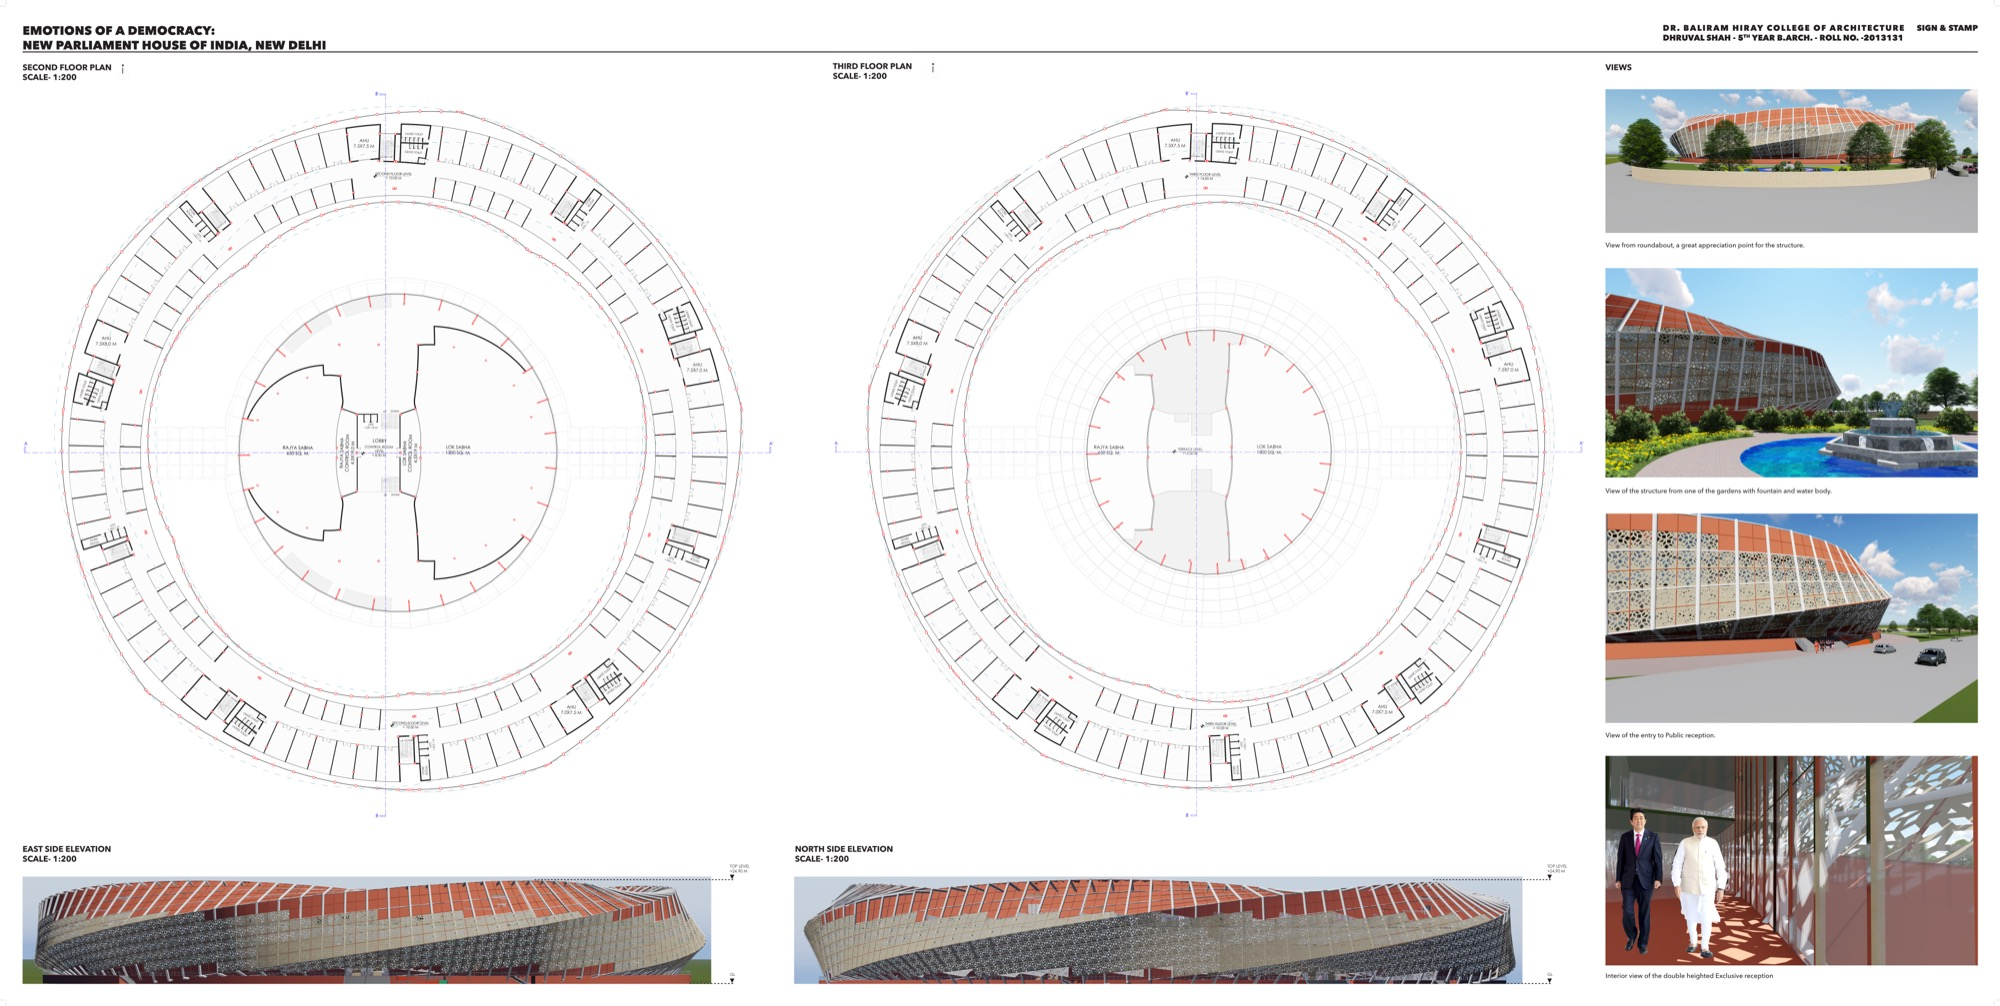 B.Arch Thesis: Emotions of a Democracy: New Parliament House of India, New Delhi Dhruval Shah 13